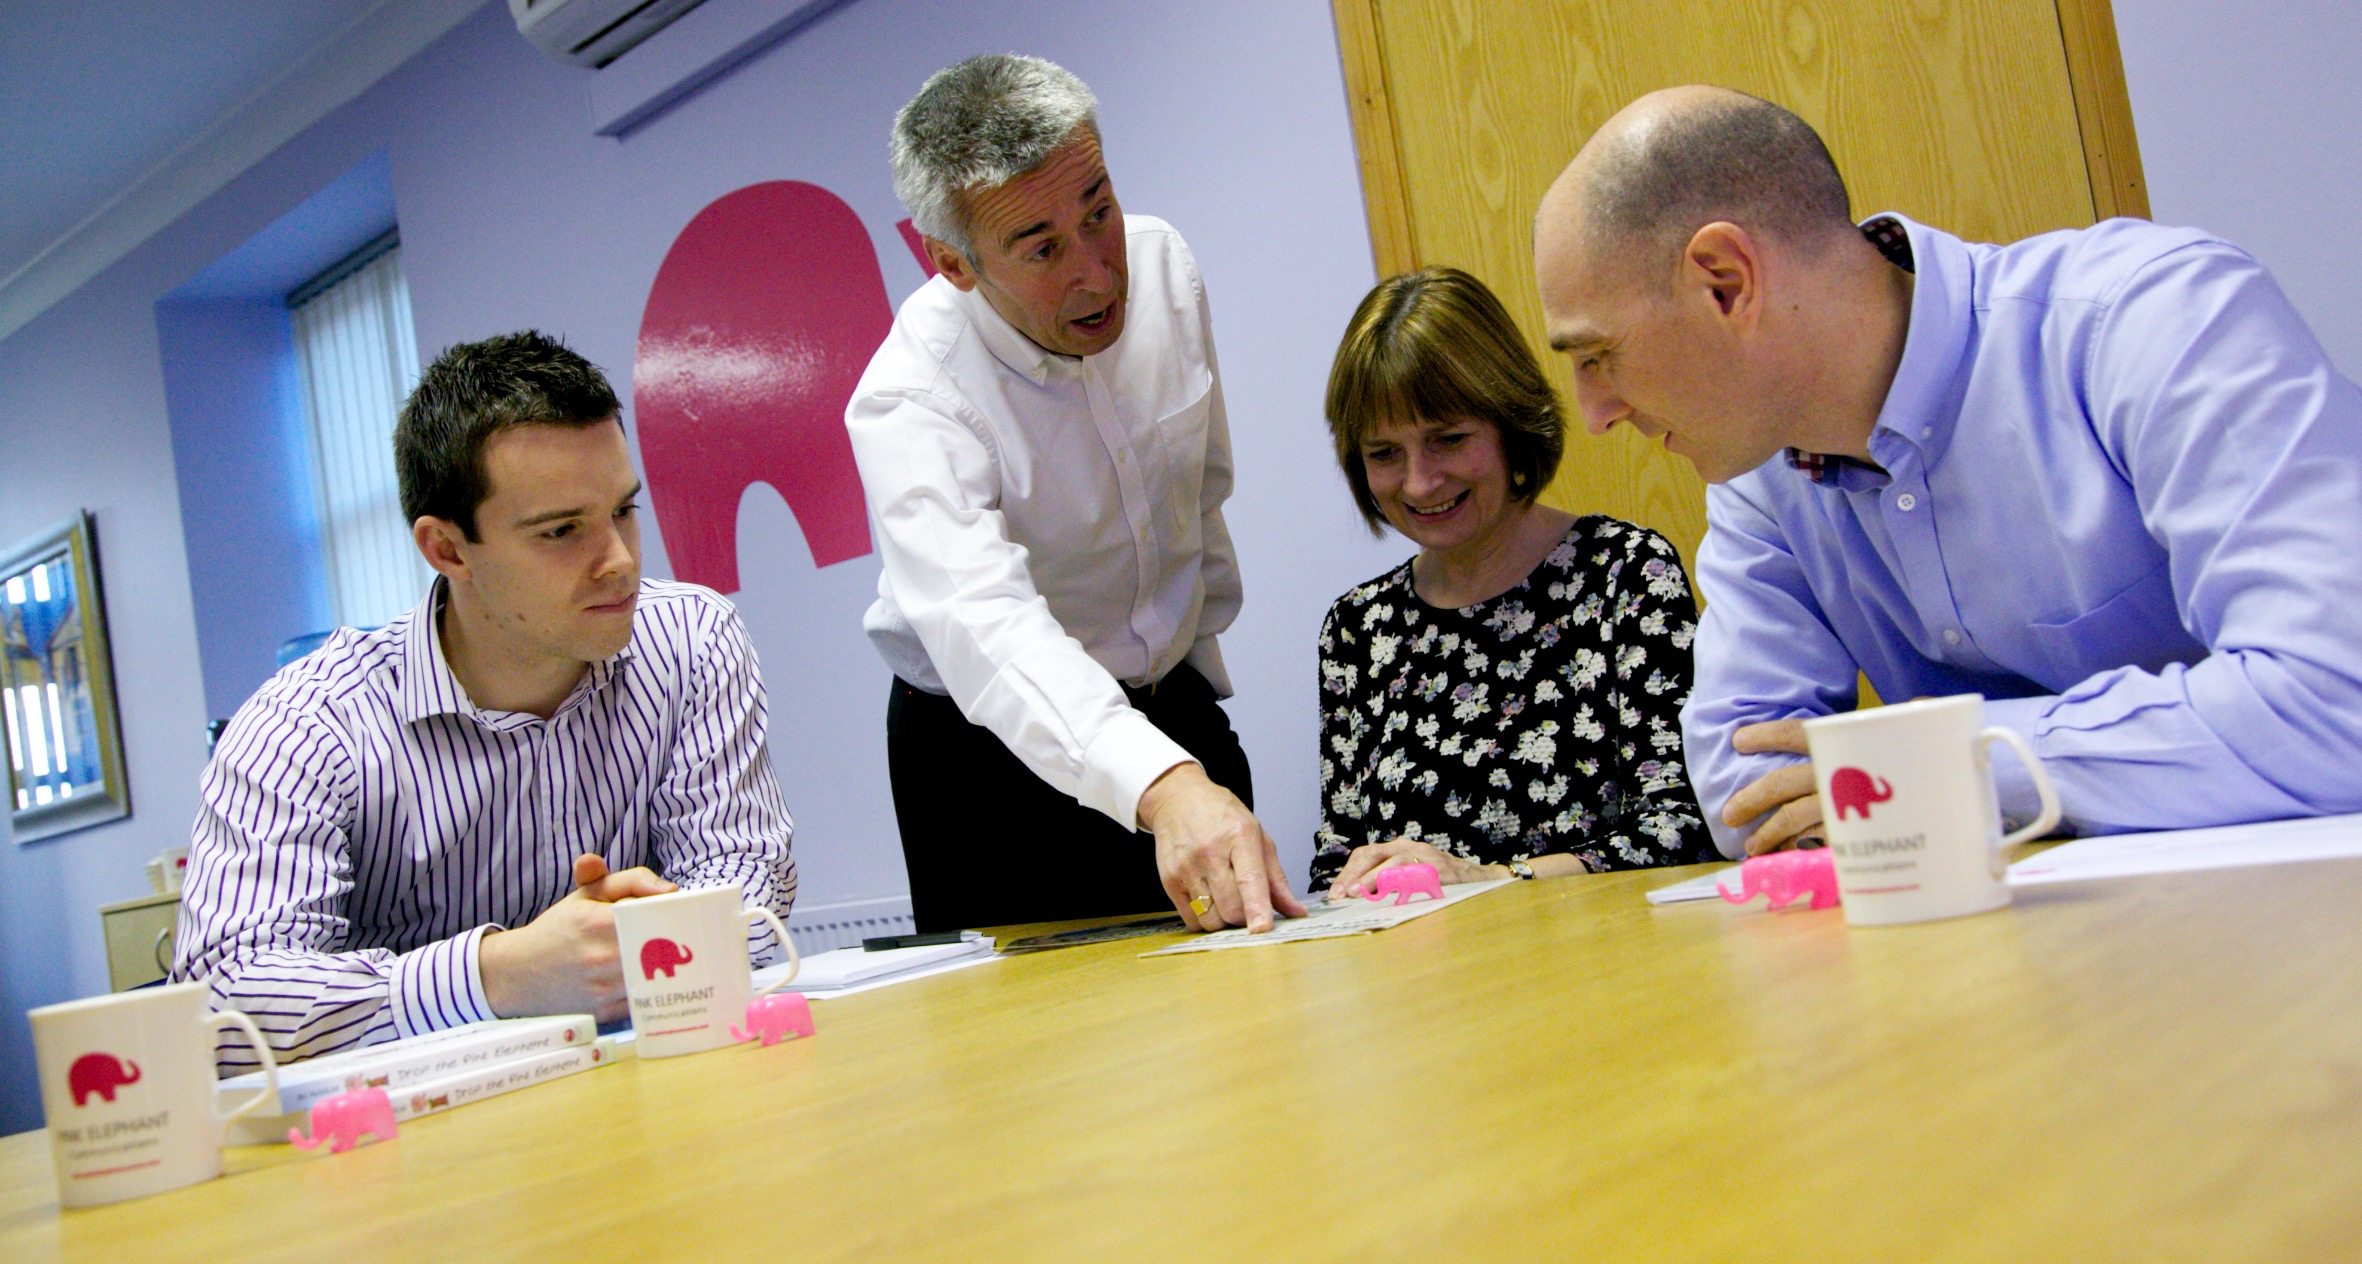 media training scotland pink elephant trainers.